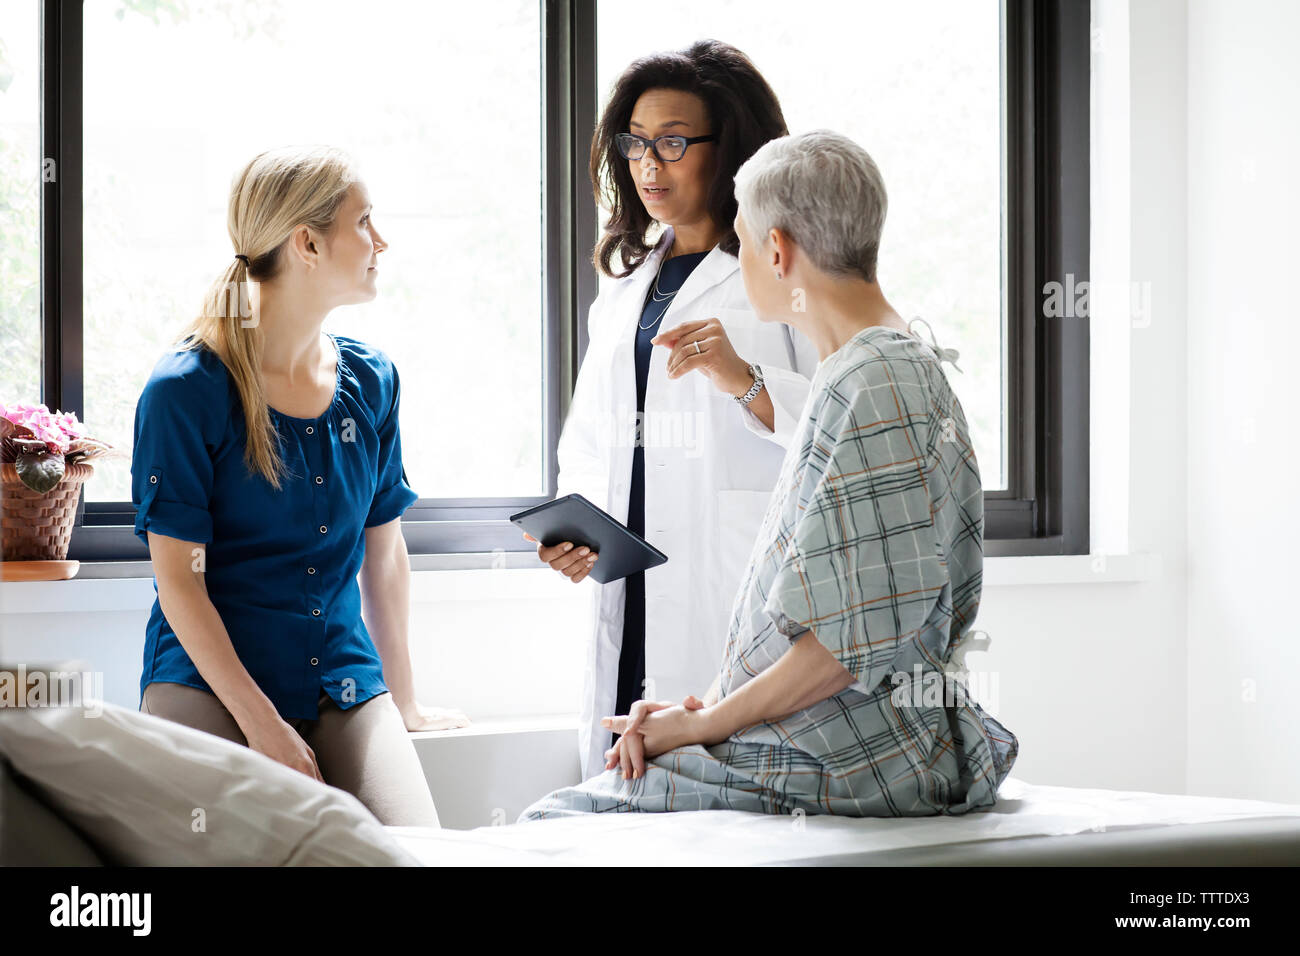 Doctor having discussing with woman and mature female patient in hospital Stock Photo